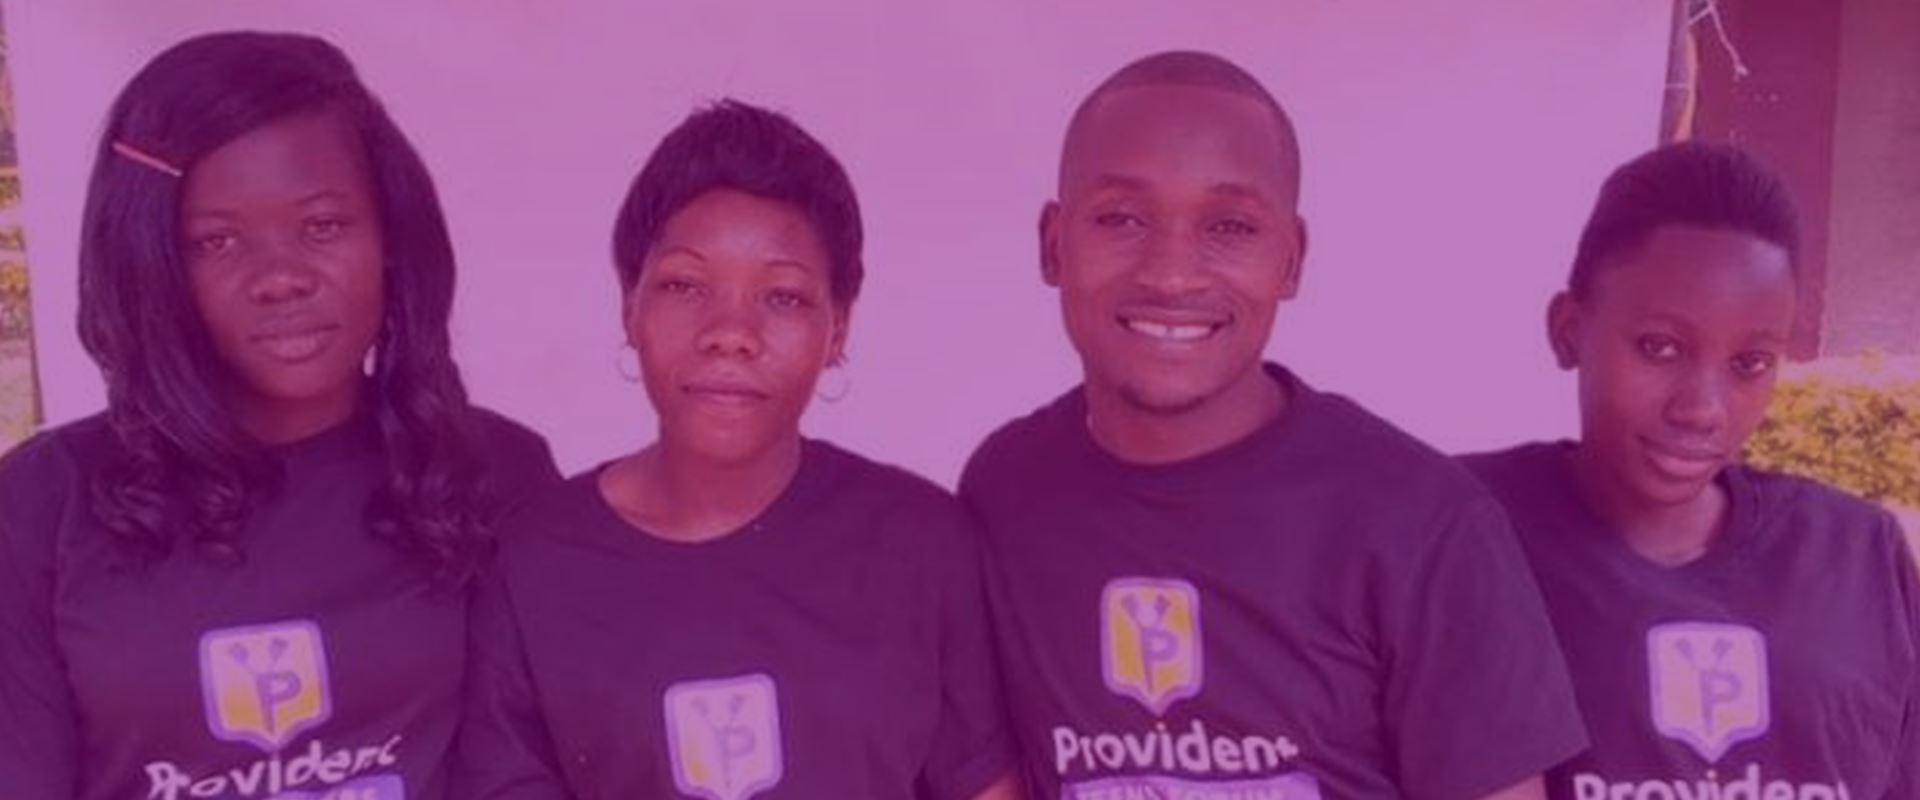 provident teen mothers team, teen mothers uganda, uganda teen mothers, provident teen mothers staff, our team, meet our team